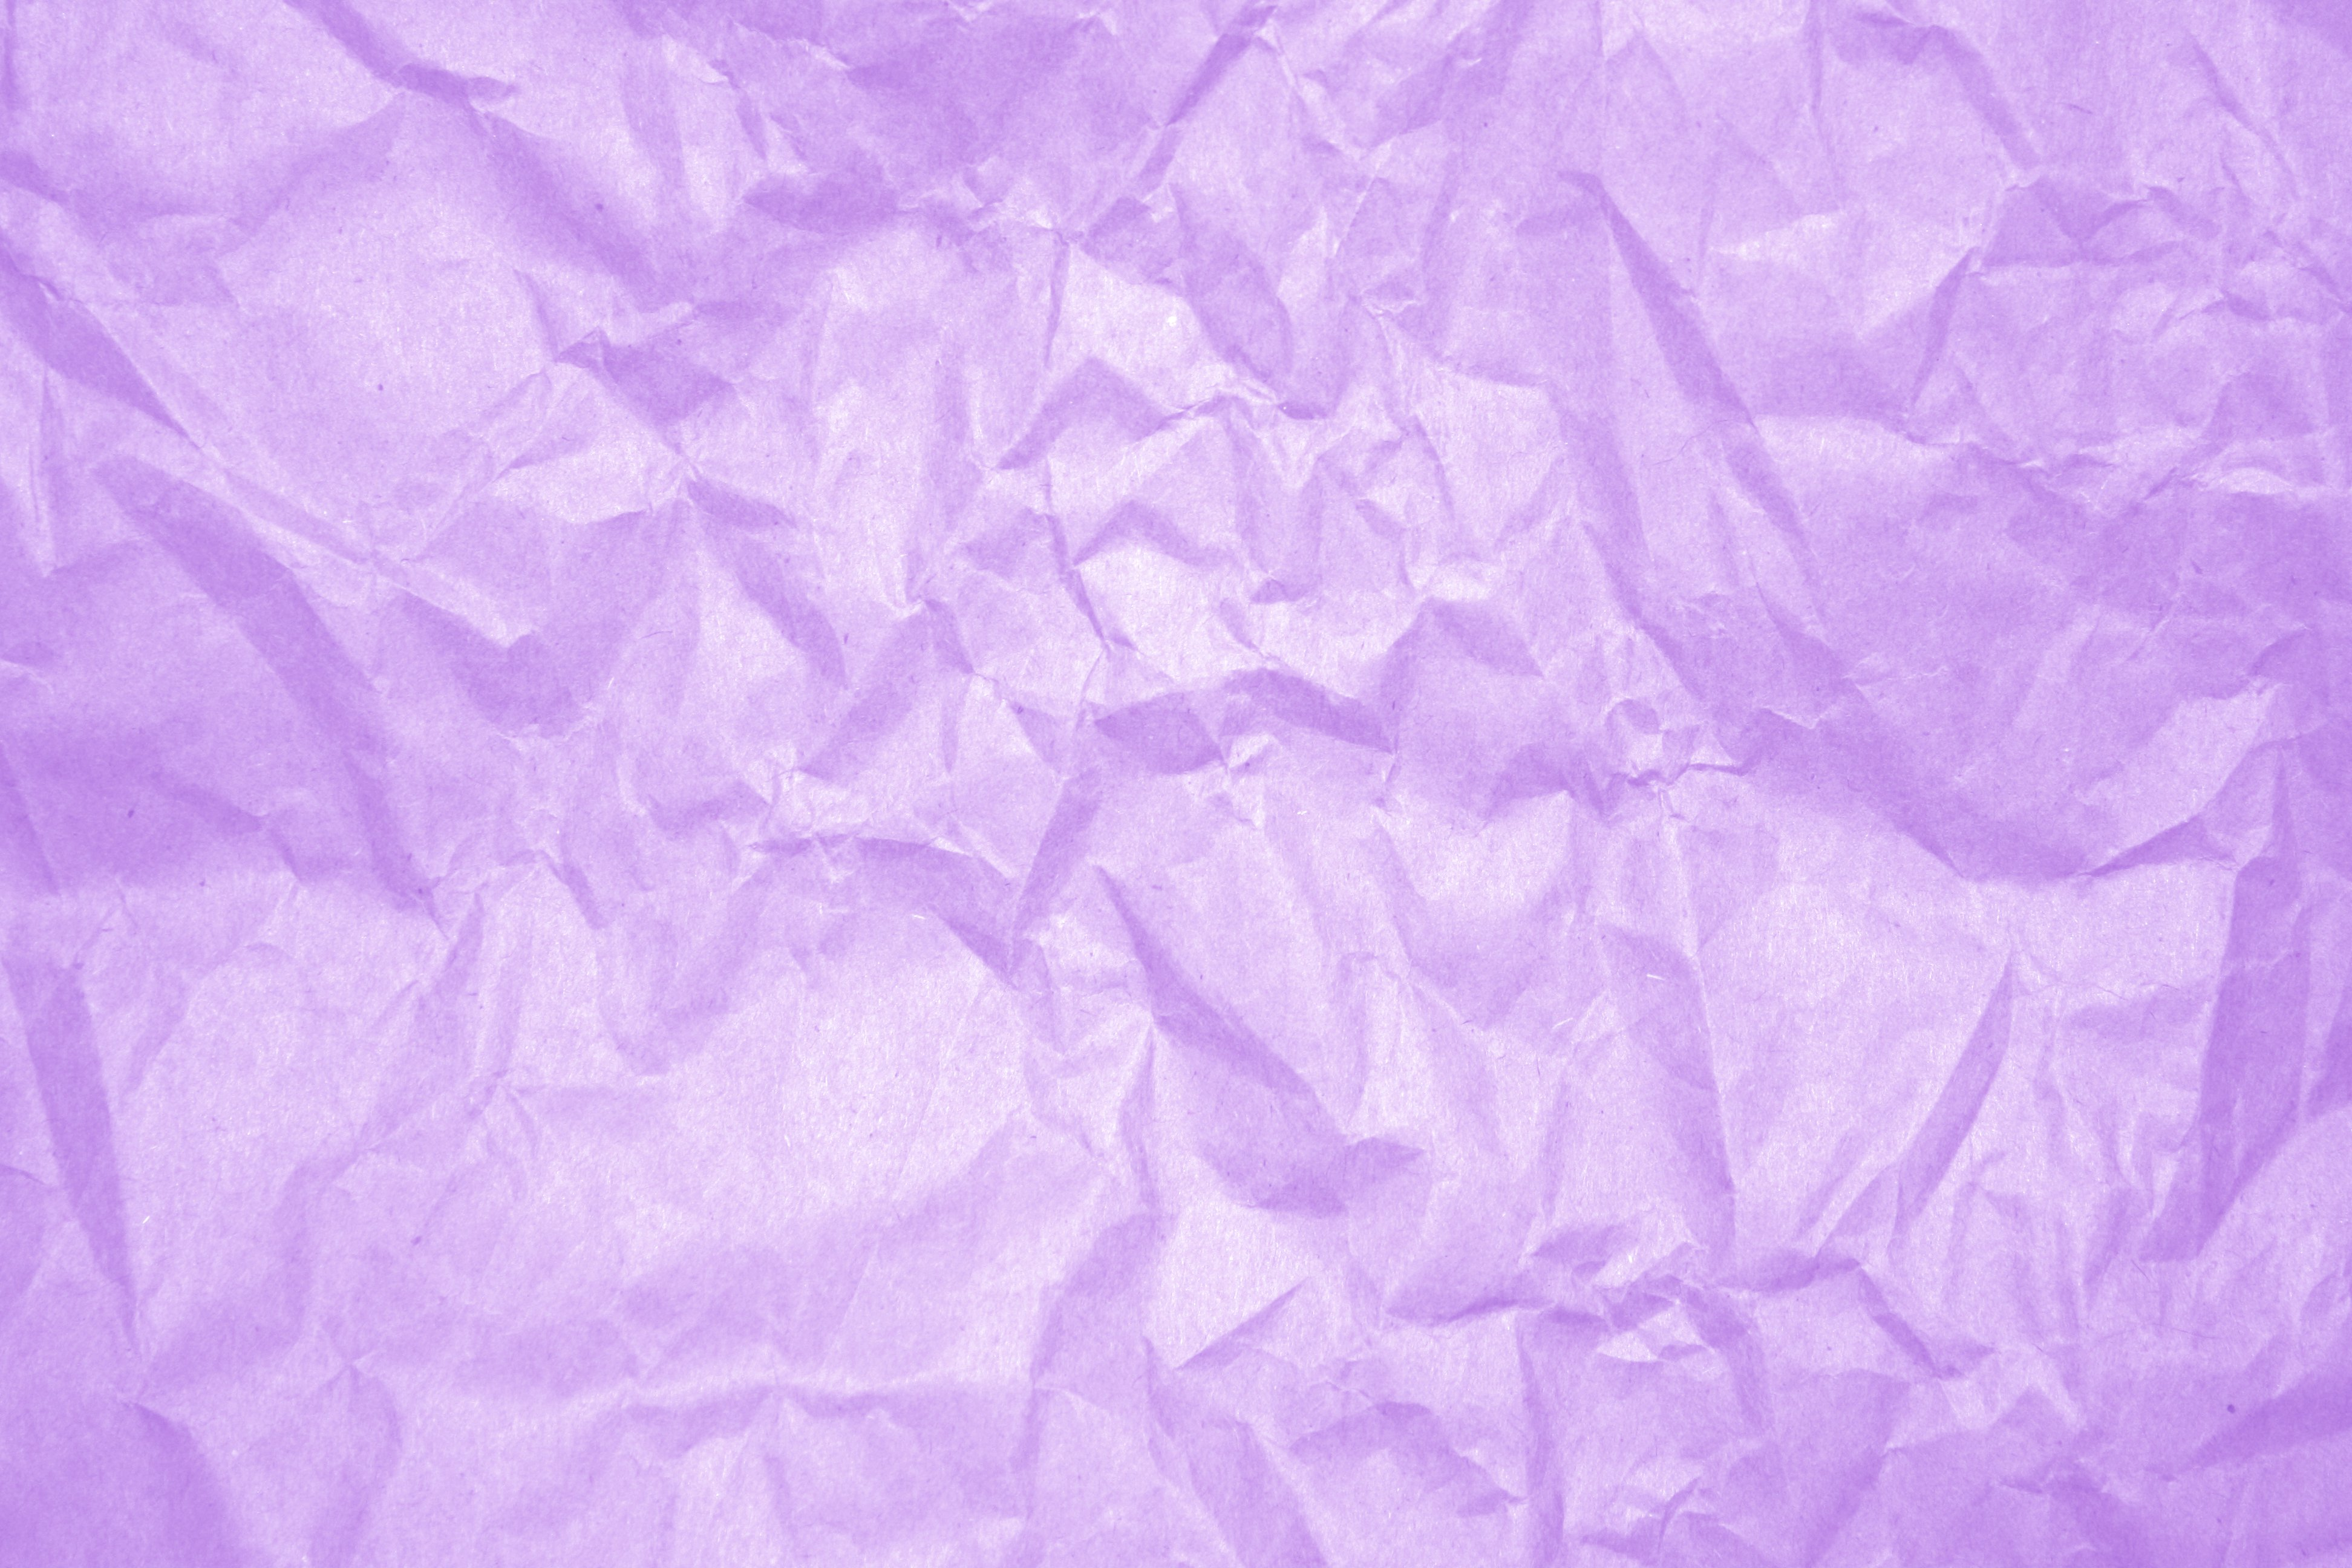 Crumpled Lavender Paper Texture Picture | Free Photograph | Photos